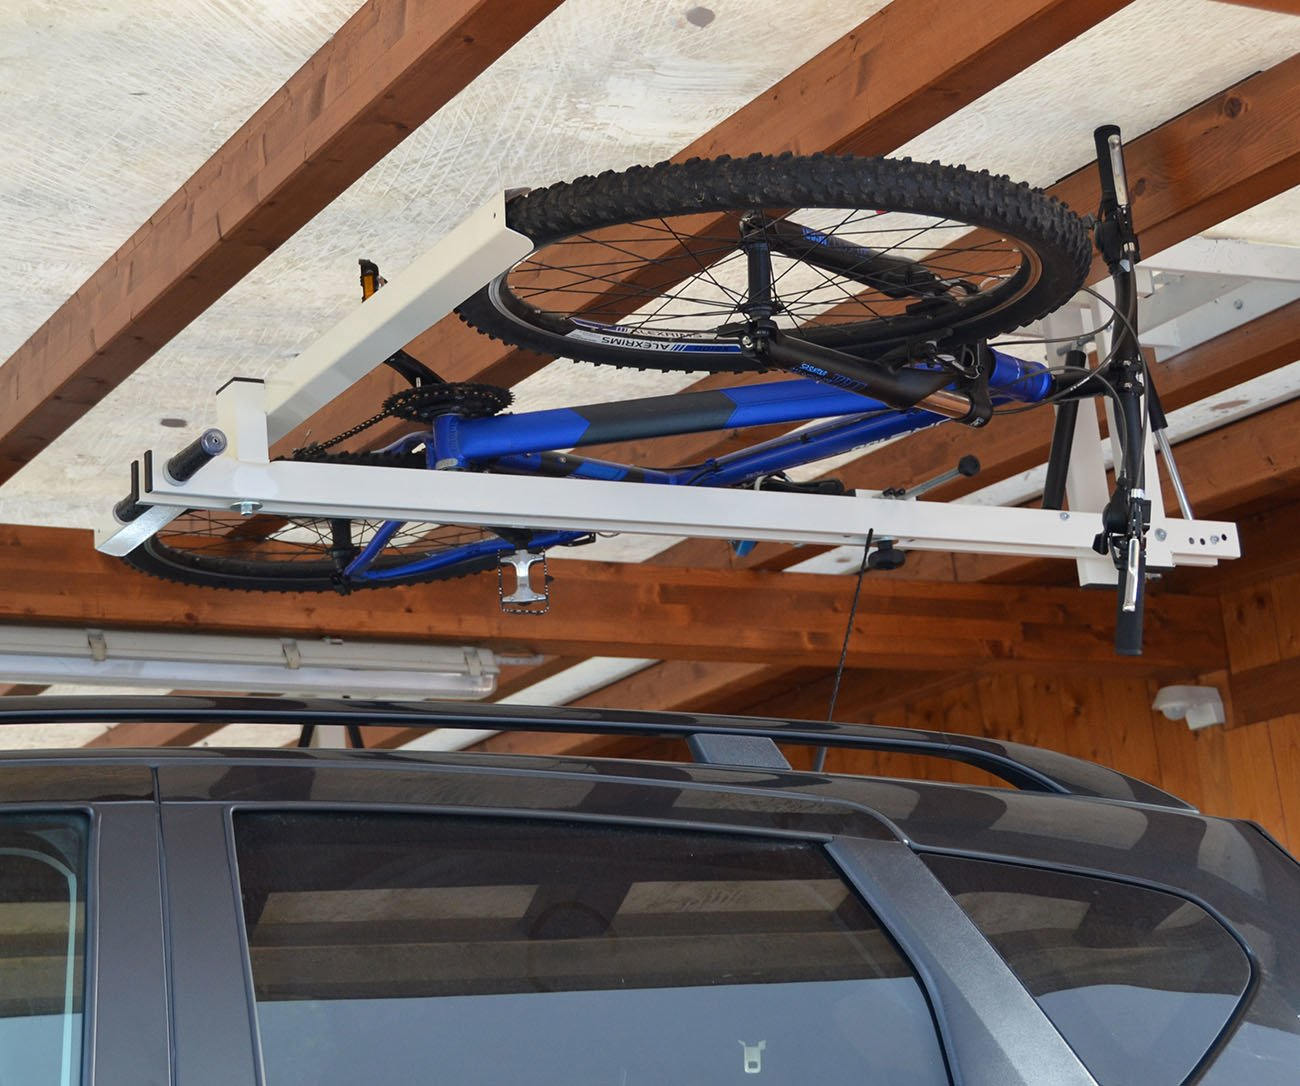 Ceiling Bike Lift For Garages Hallways Basements Flat